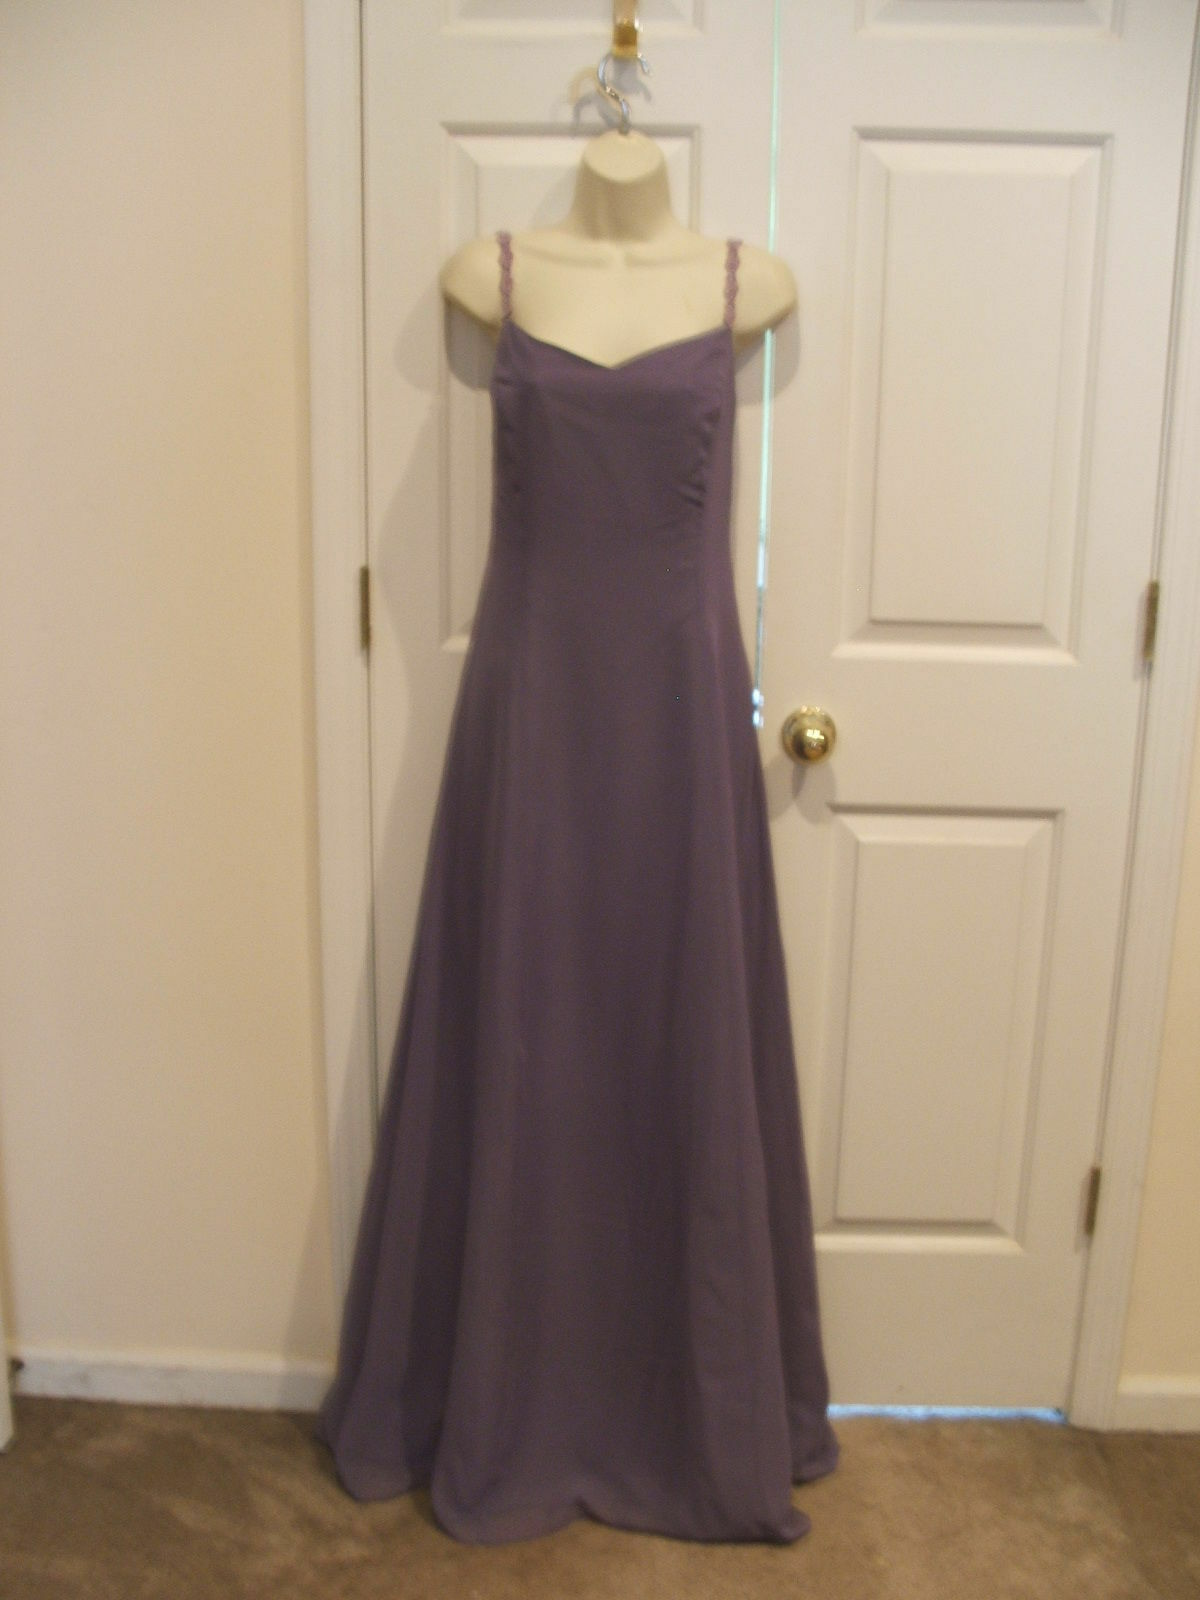 NWT alfred angelo DEEP ORCHID bridesmaid /Formal Occasion long Gown size 14